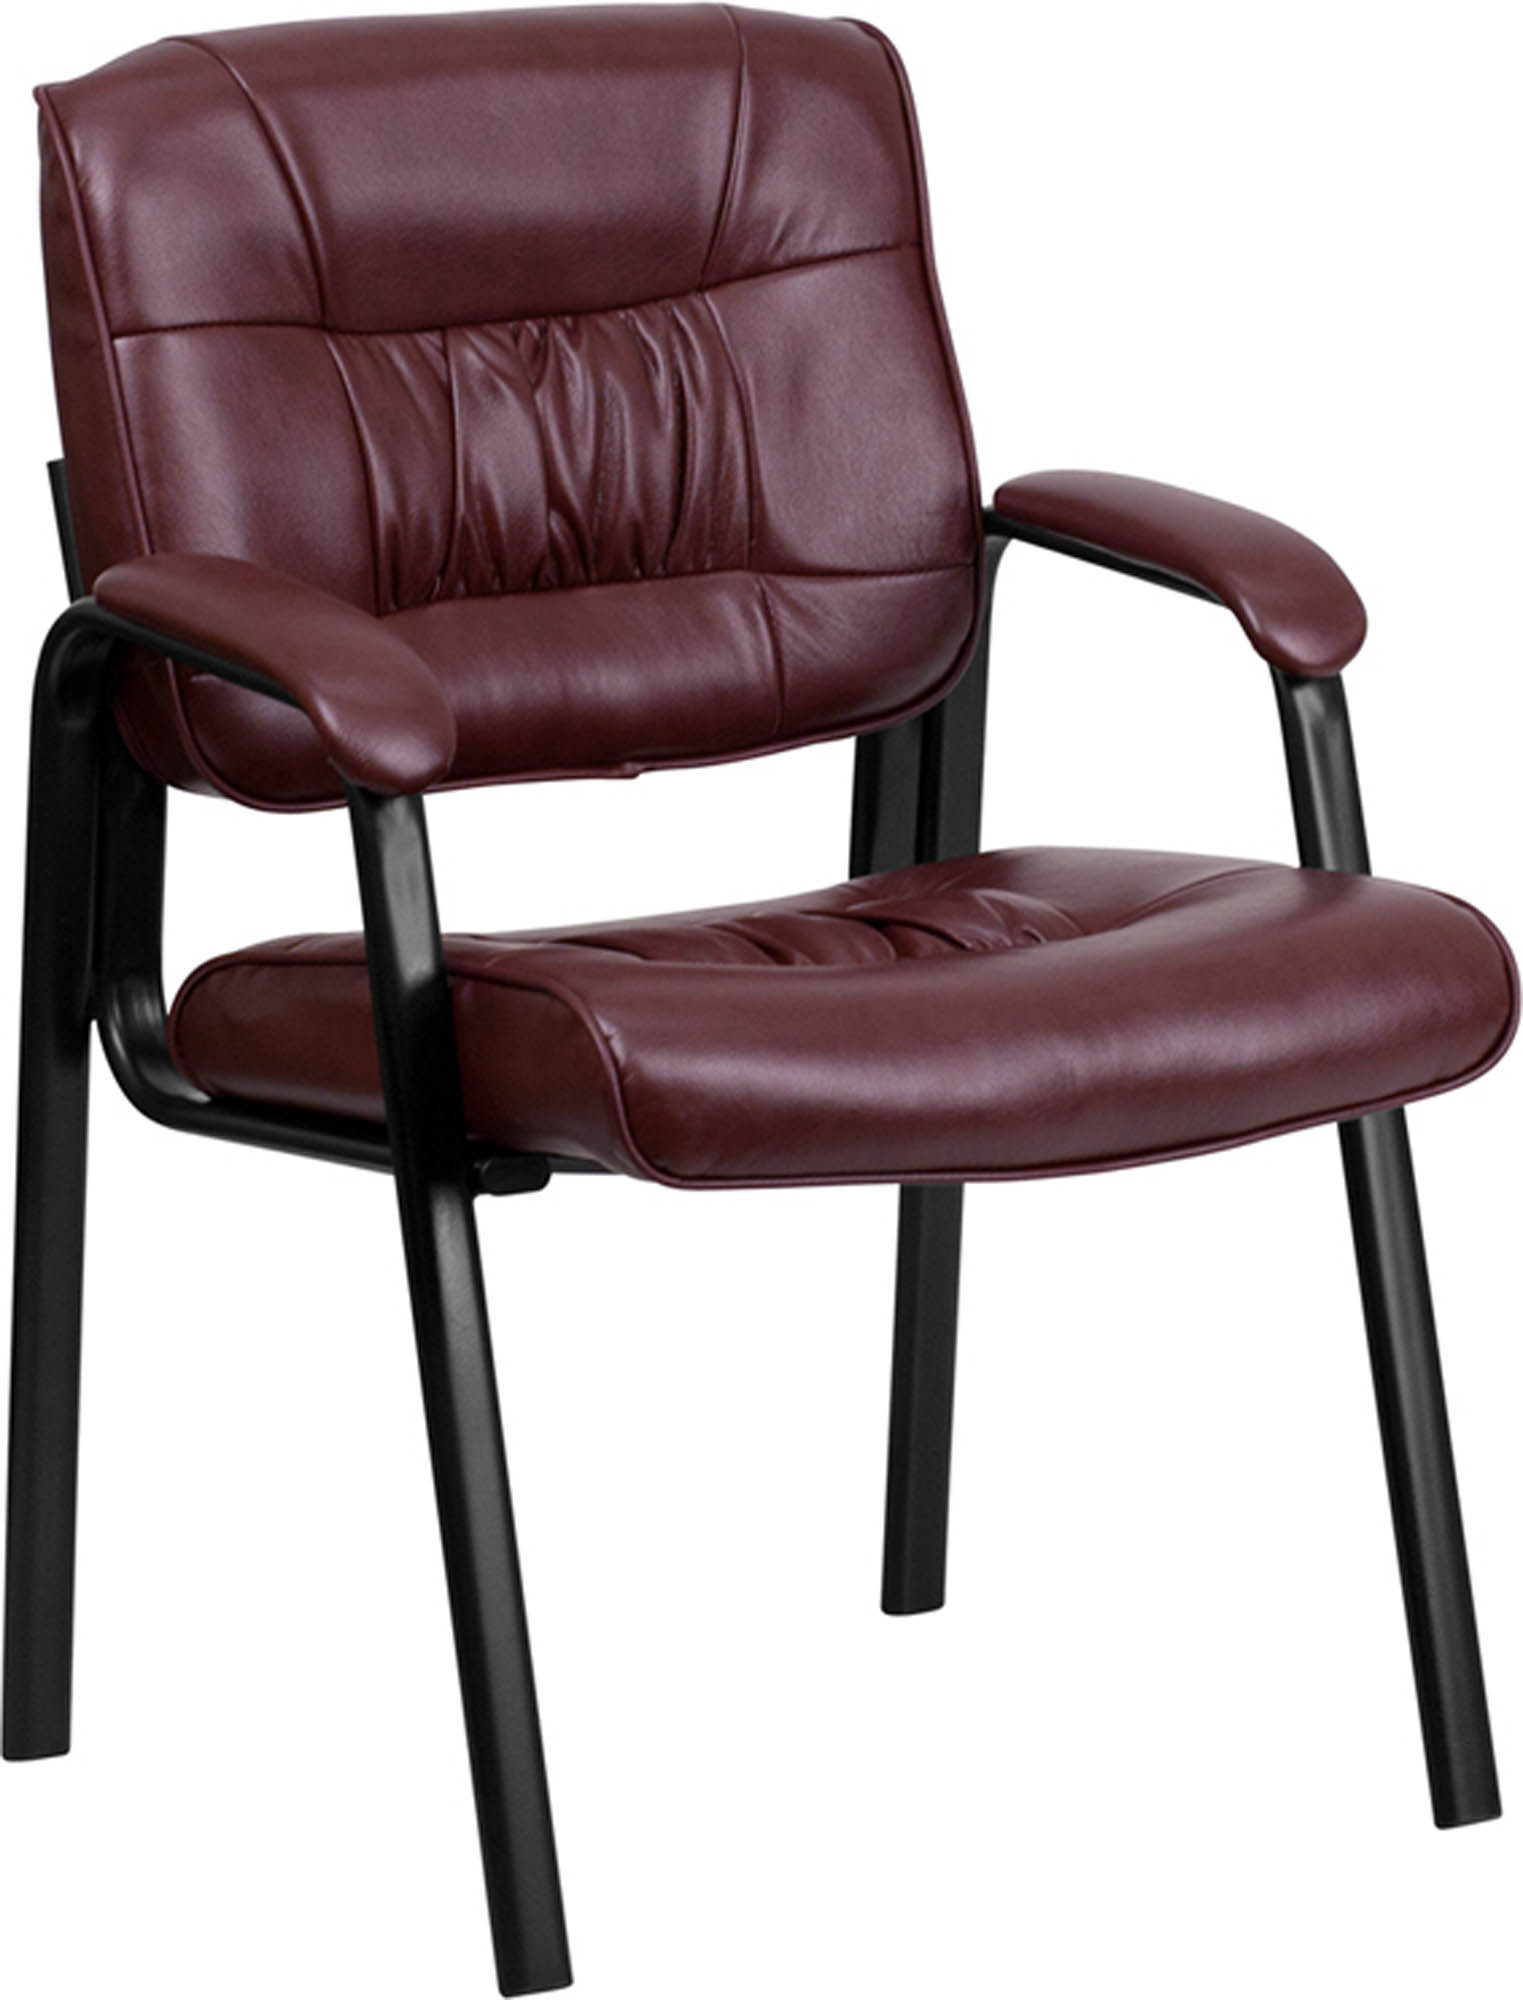 Offex Burgundy Leather Guest Reception Chair with Black Frame Finish [BT-1404-BURG-GG]